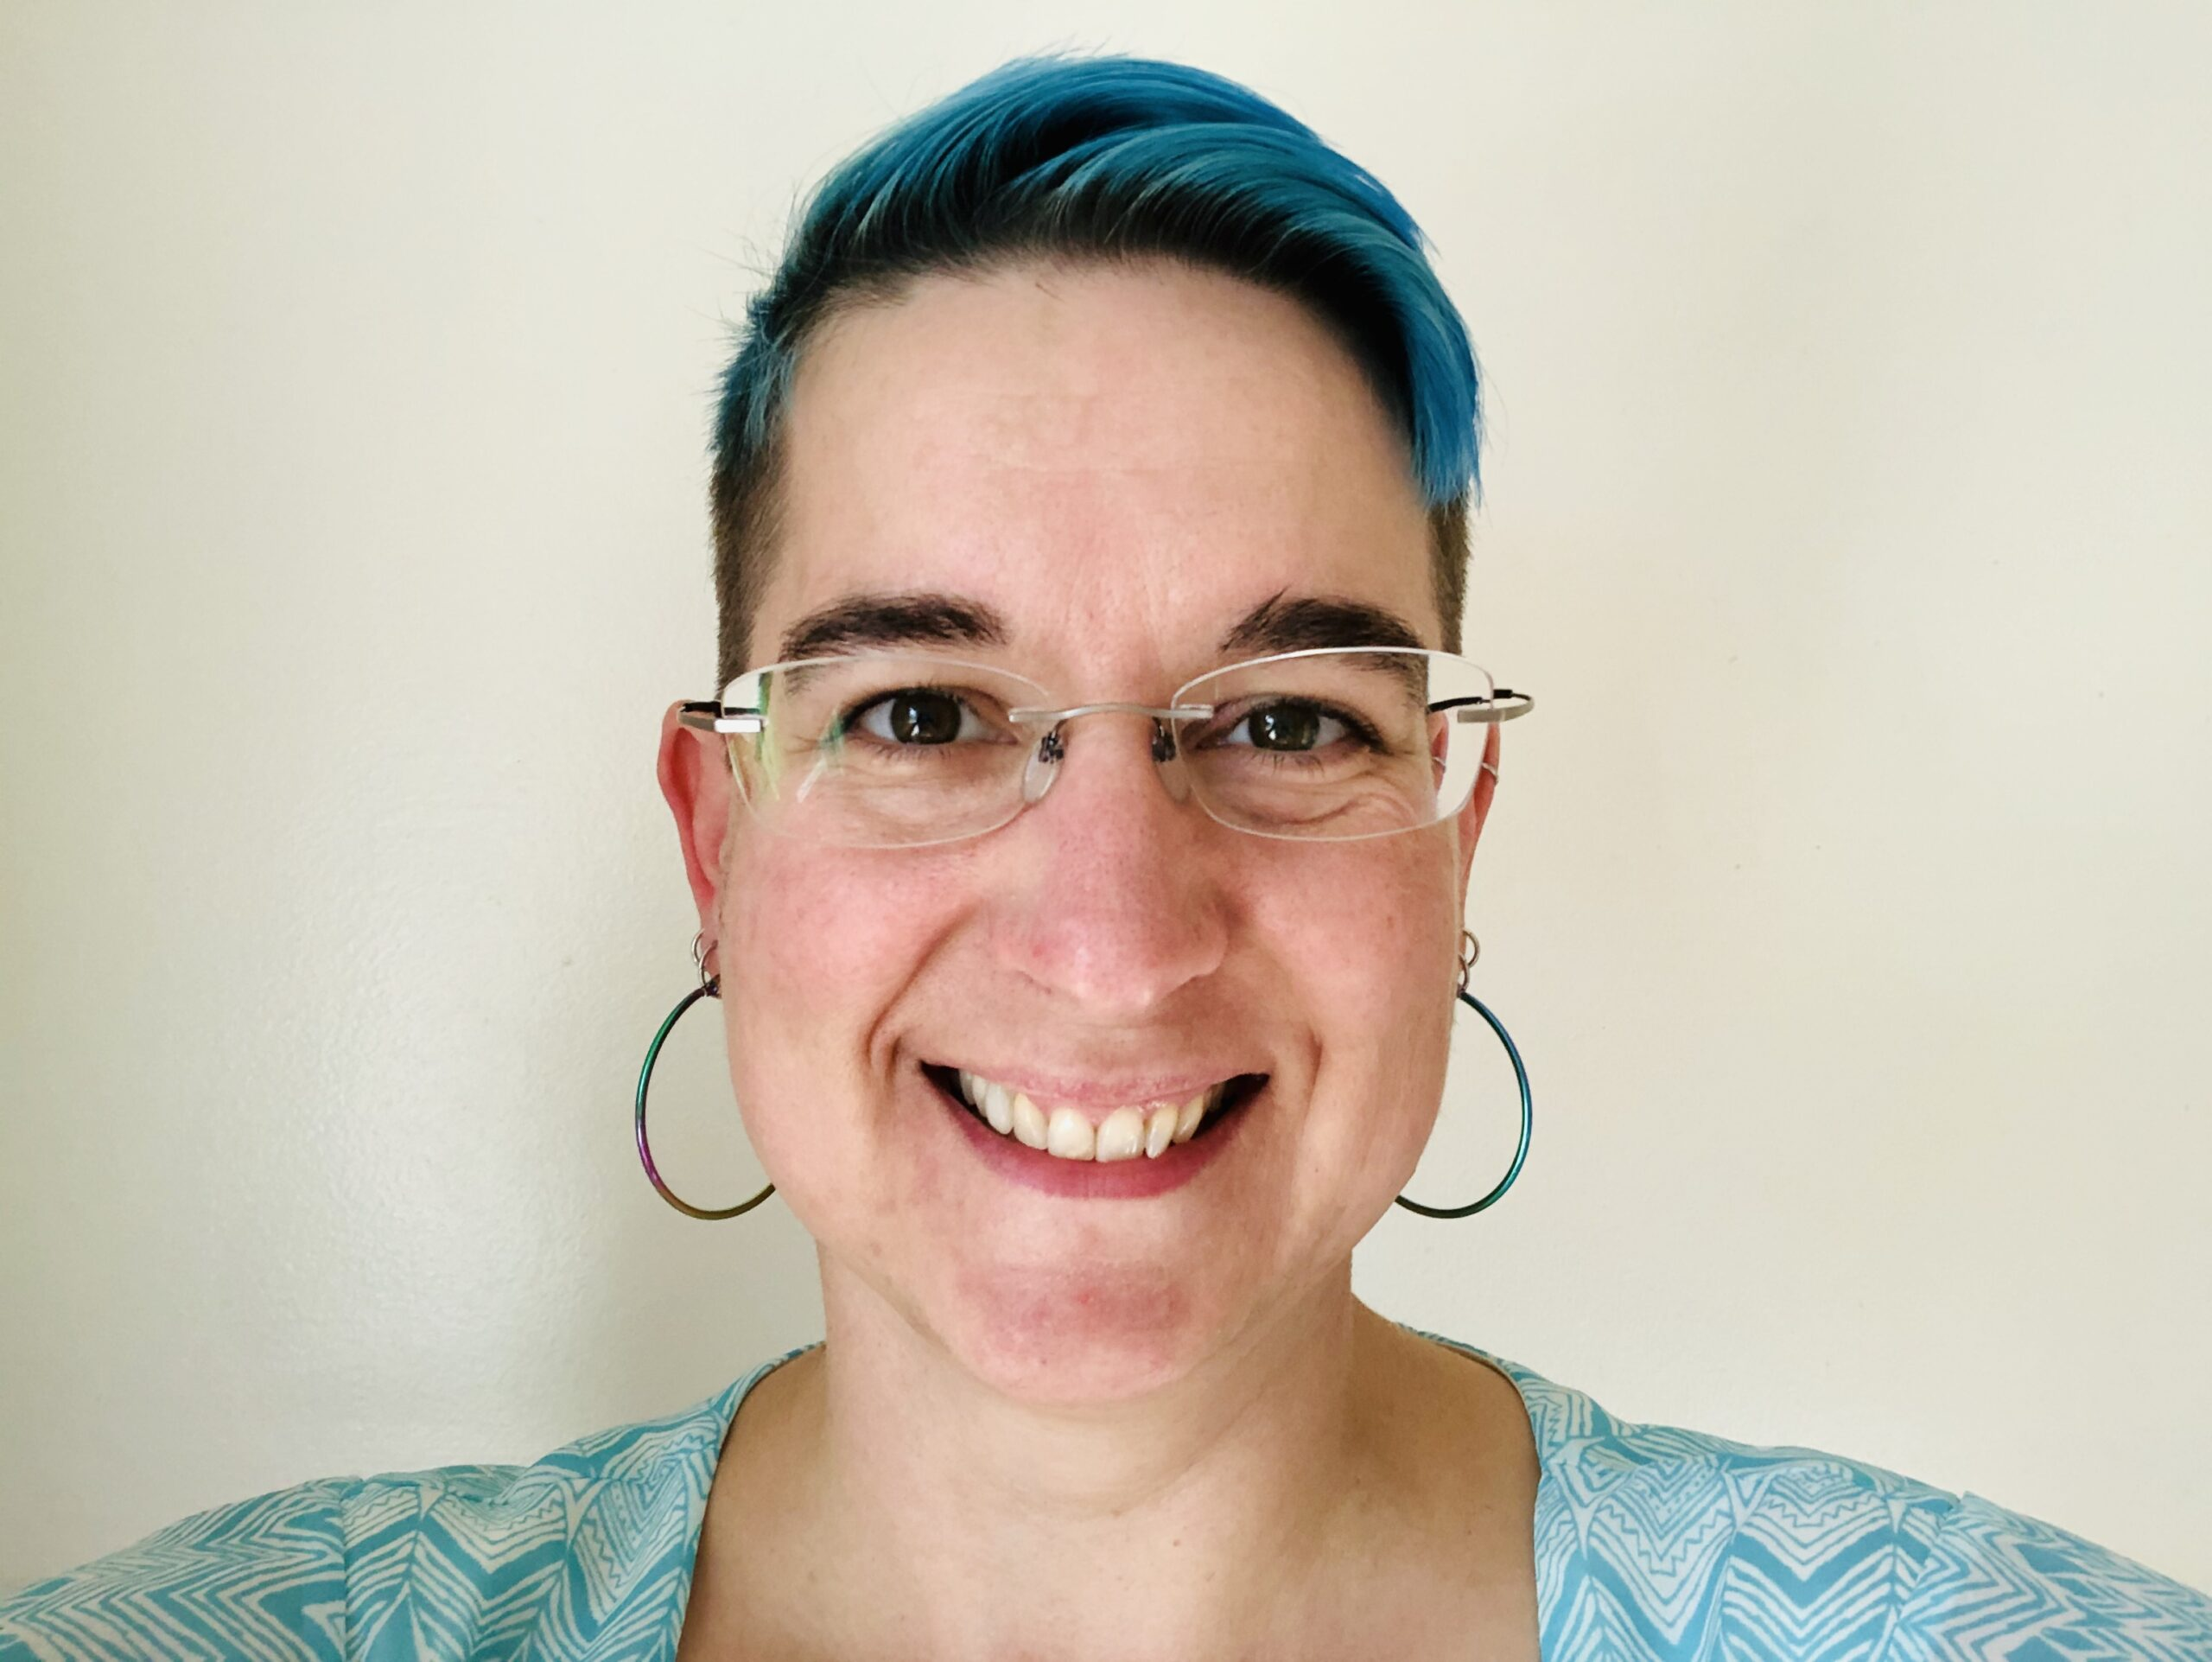 Photo of a woman with short blue hair and large hoop earrings.